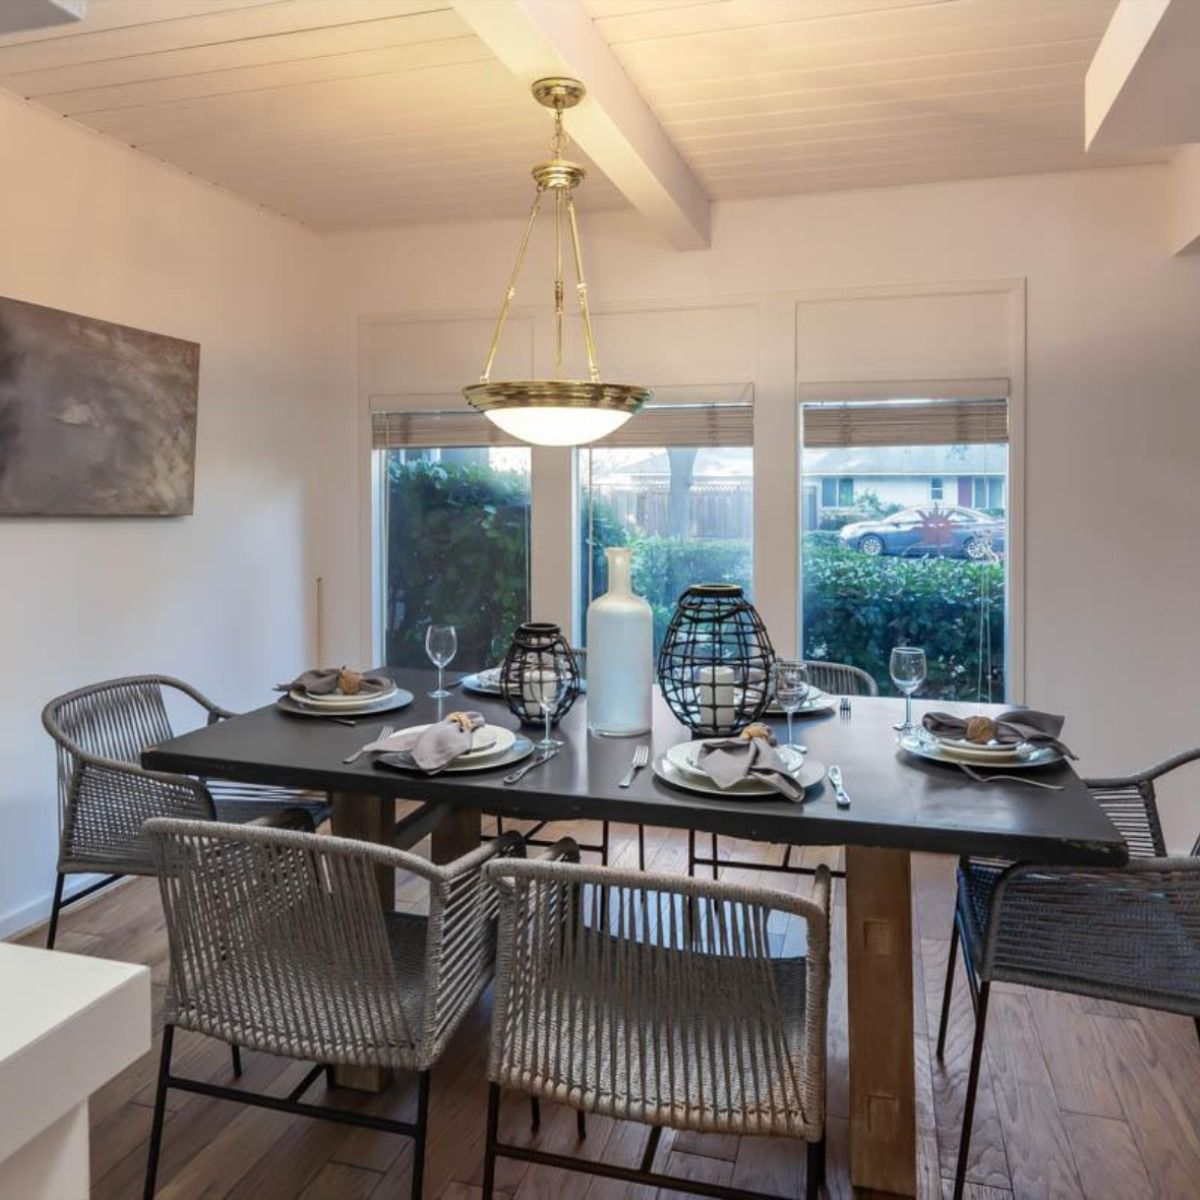 725 Evergreen St, Menlo Park, CA 94025   $3,650,000 4 Beds   2.5 Baths   1,640Sq. Ft.  For questions or for private showing contact: Carolyn Botts Compass P: (650) 207-0246 E: carolynb@apr.com  #homeforsaleinMenloPark #homesforsale #MenloParkHomes #houseforsale #realtor #compass #realestate #luxuryrealestate #realestateagent  #realestatemarket #homes #findhome #beautifulhome #firsttimehomebuyers #homebuyers #housingmarket #siliconvalleyhomes #siliconvalley #carolynbotts #carolynbottsrealtor